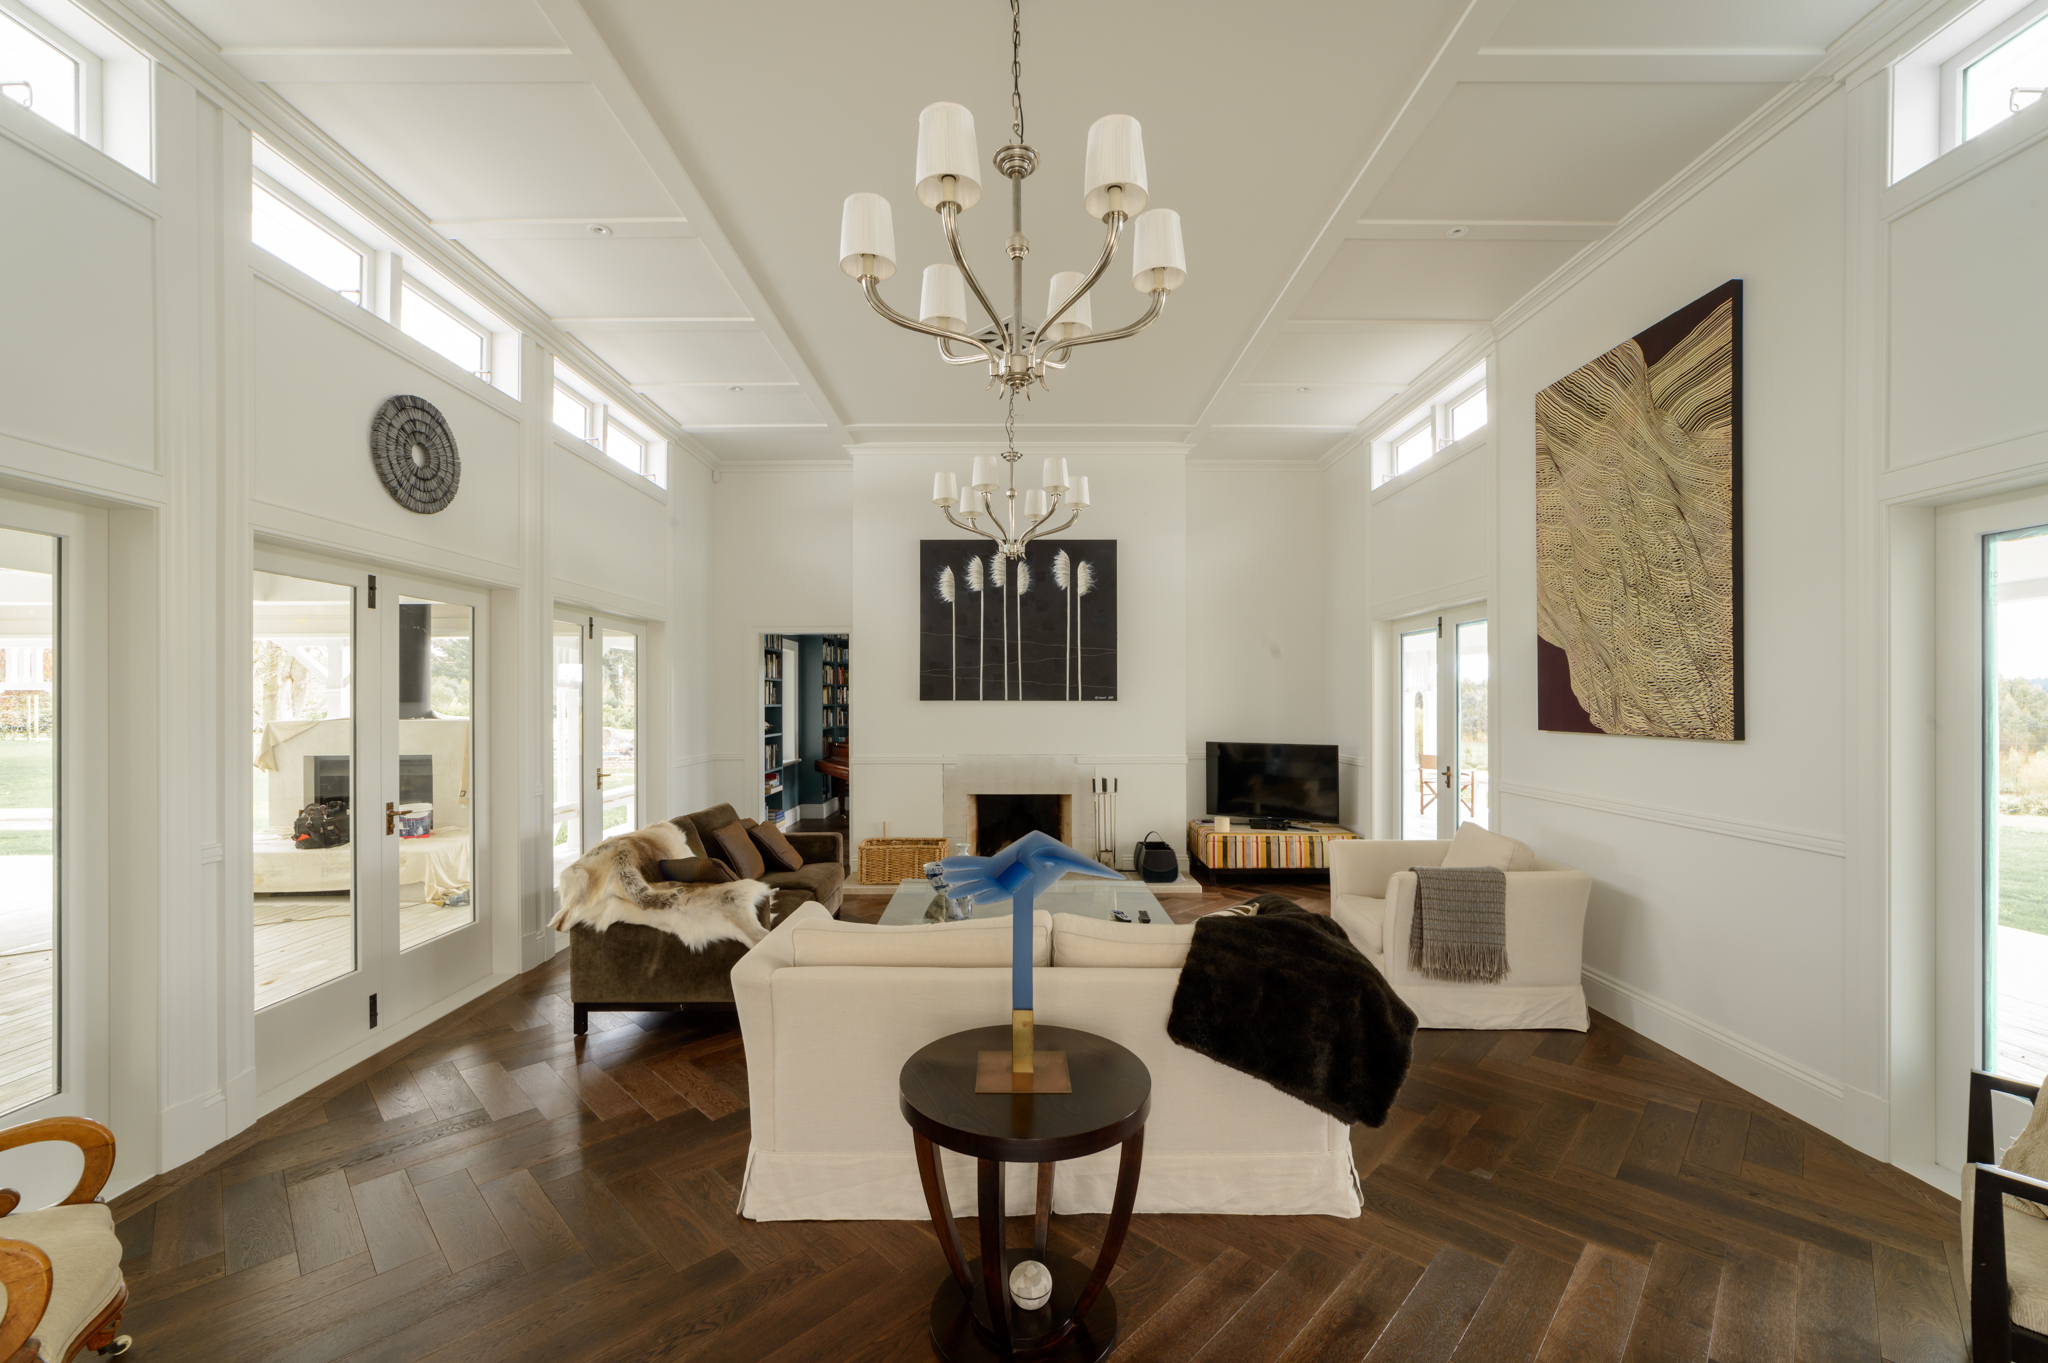 Living Room, with a verandah on 3 sides, is the heart of the house.